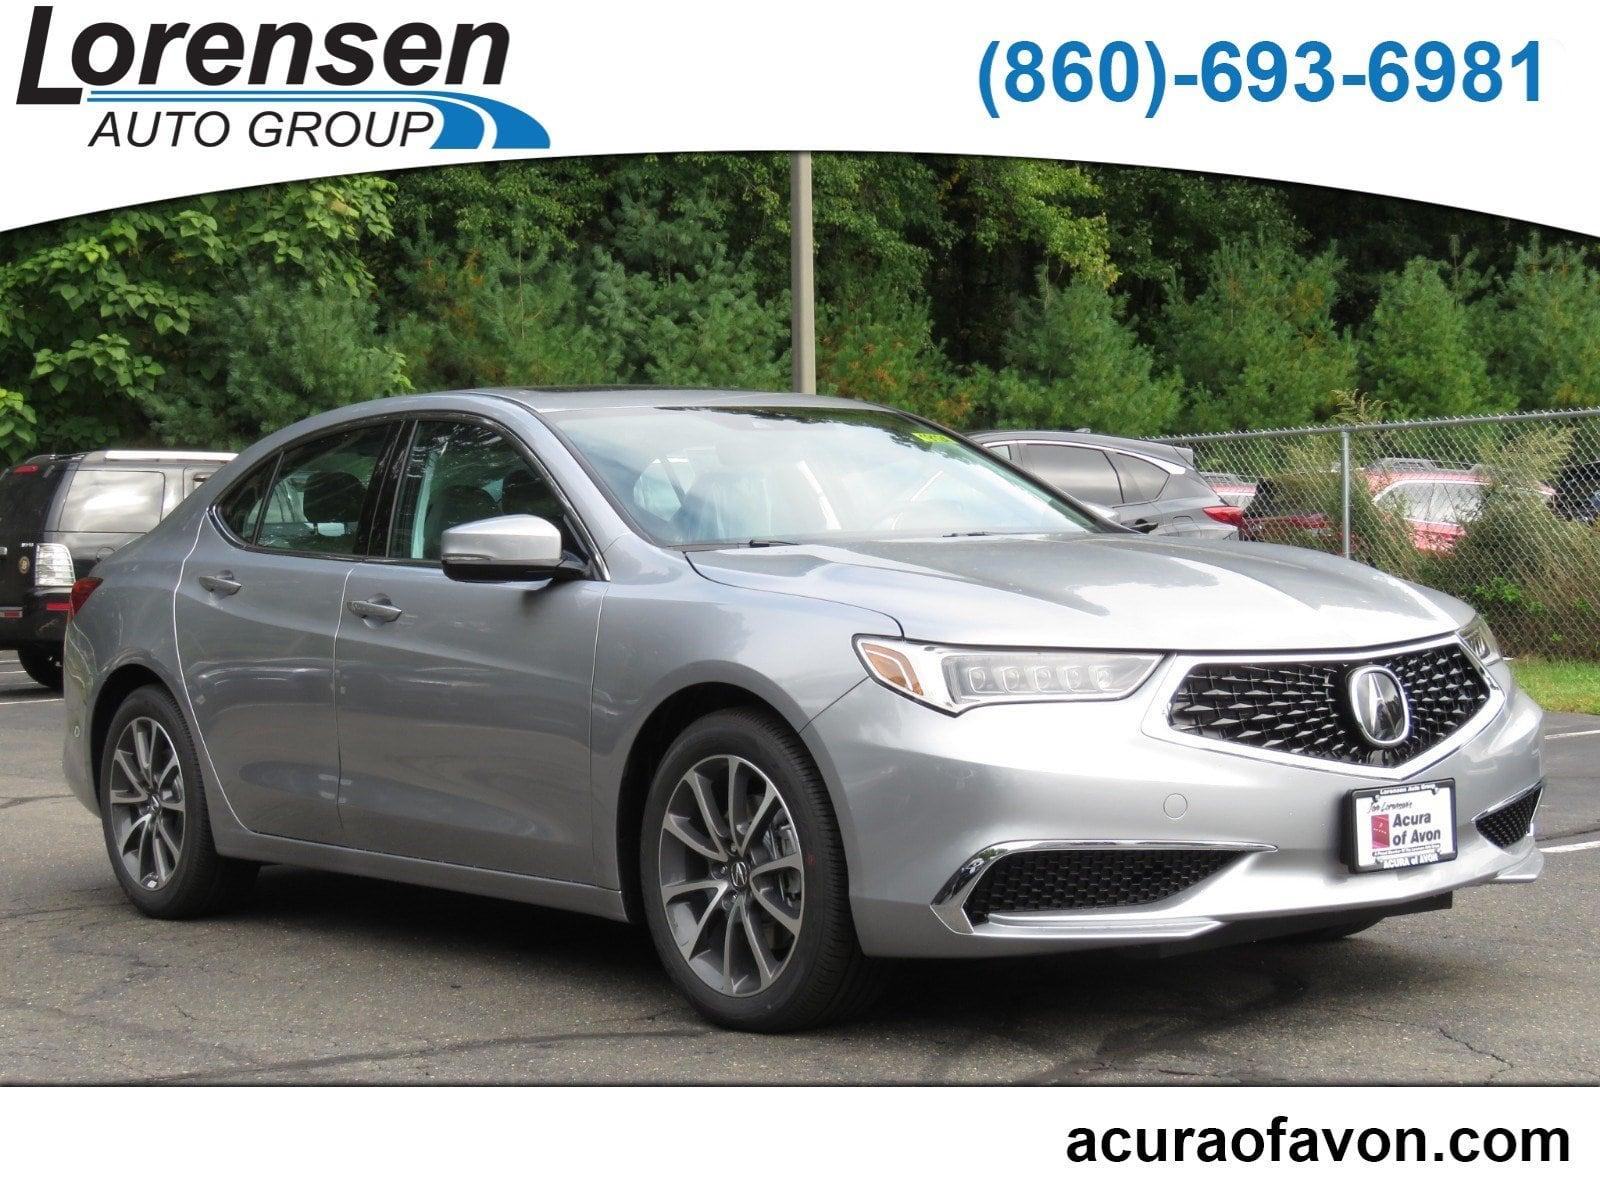 New 2019 Acura TLX 3 5 V 6 9 AT SH AWD 3 5L SH AWD in Canton